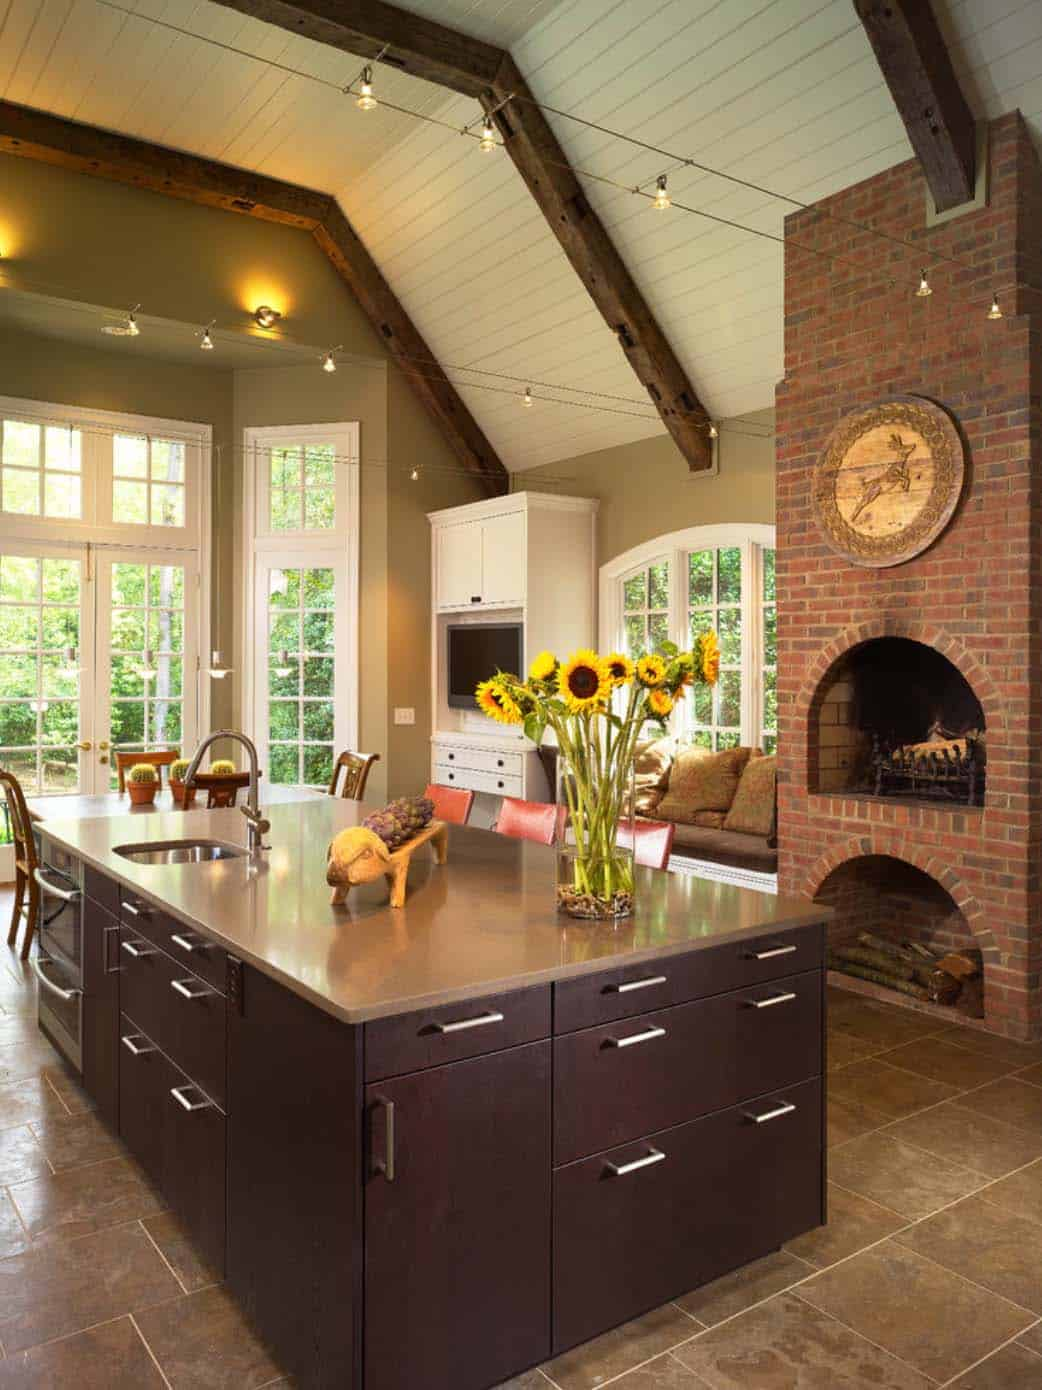 Kitchen Showcasing Cozy Fireplace-10-1 Kindesign